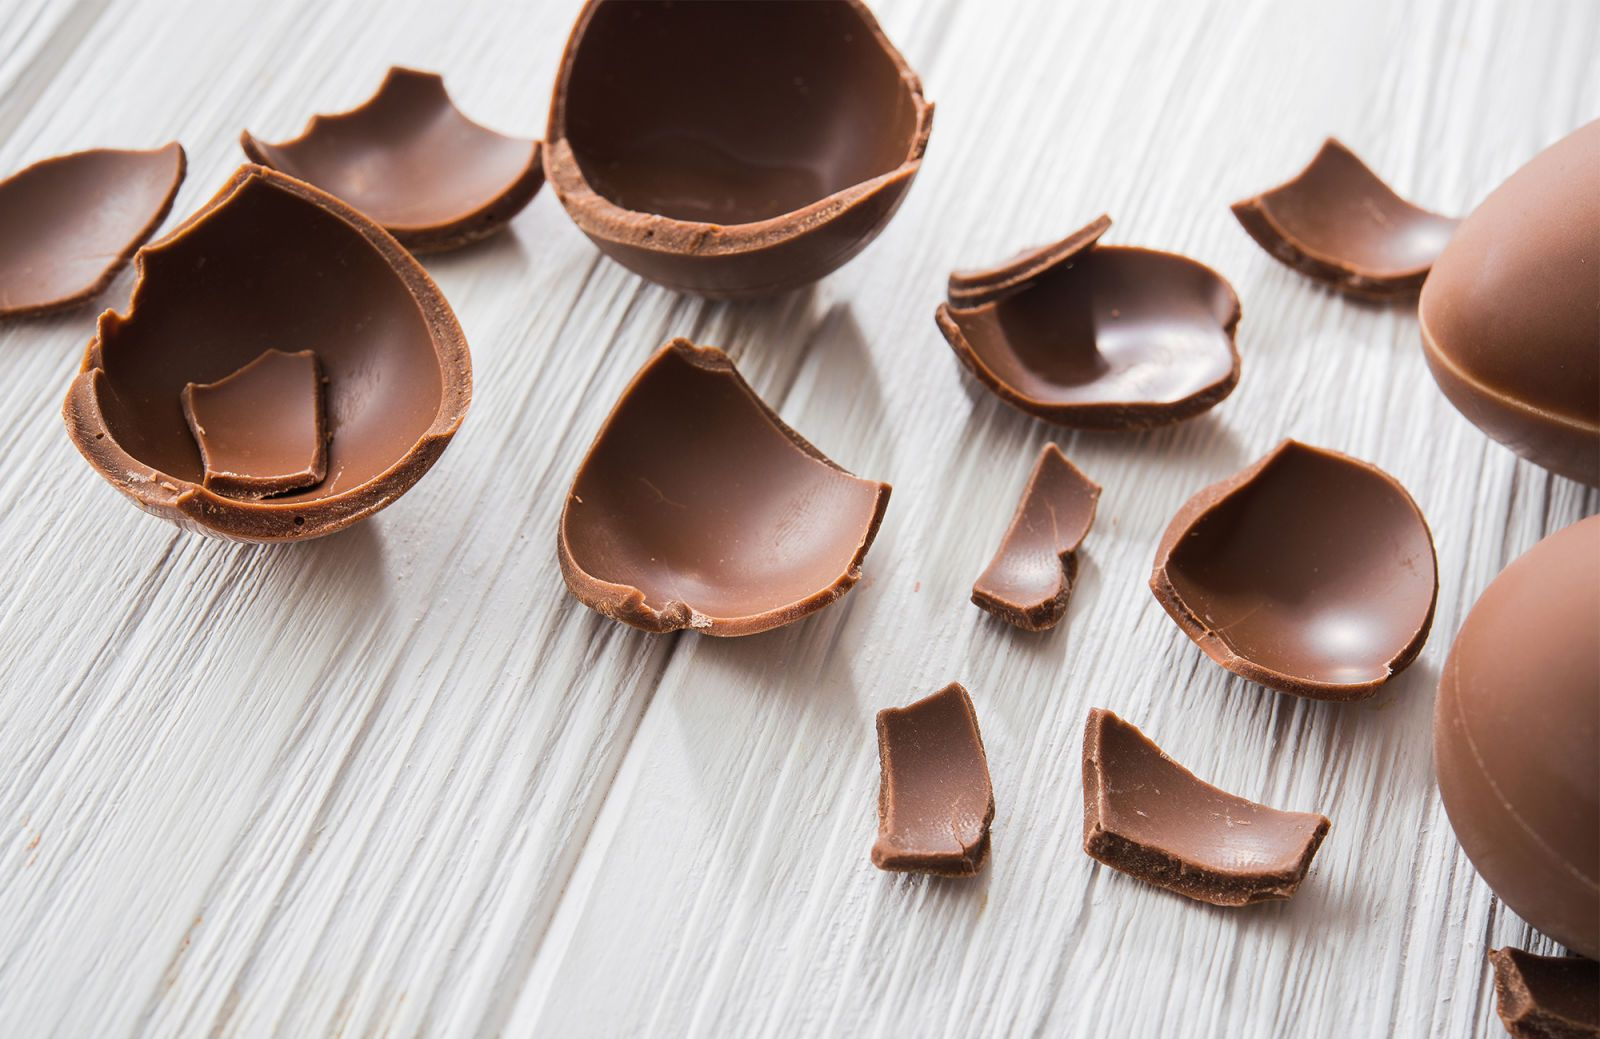 This is the best way to open an Easter egg, says chocolatier